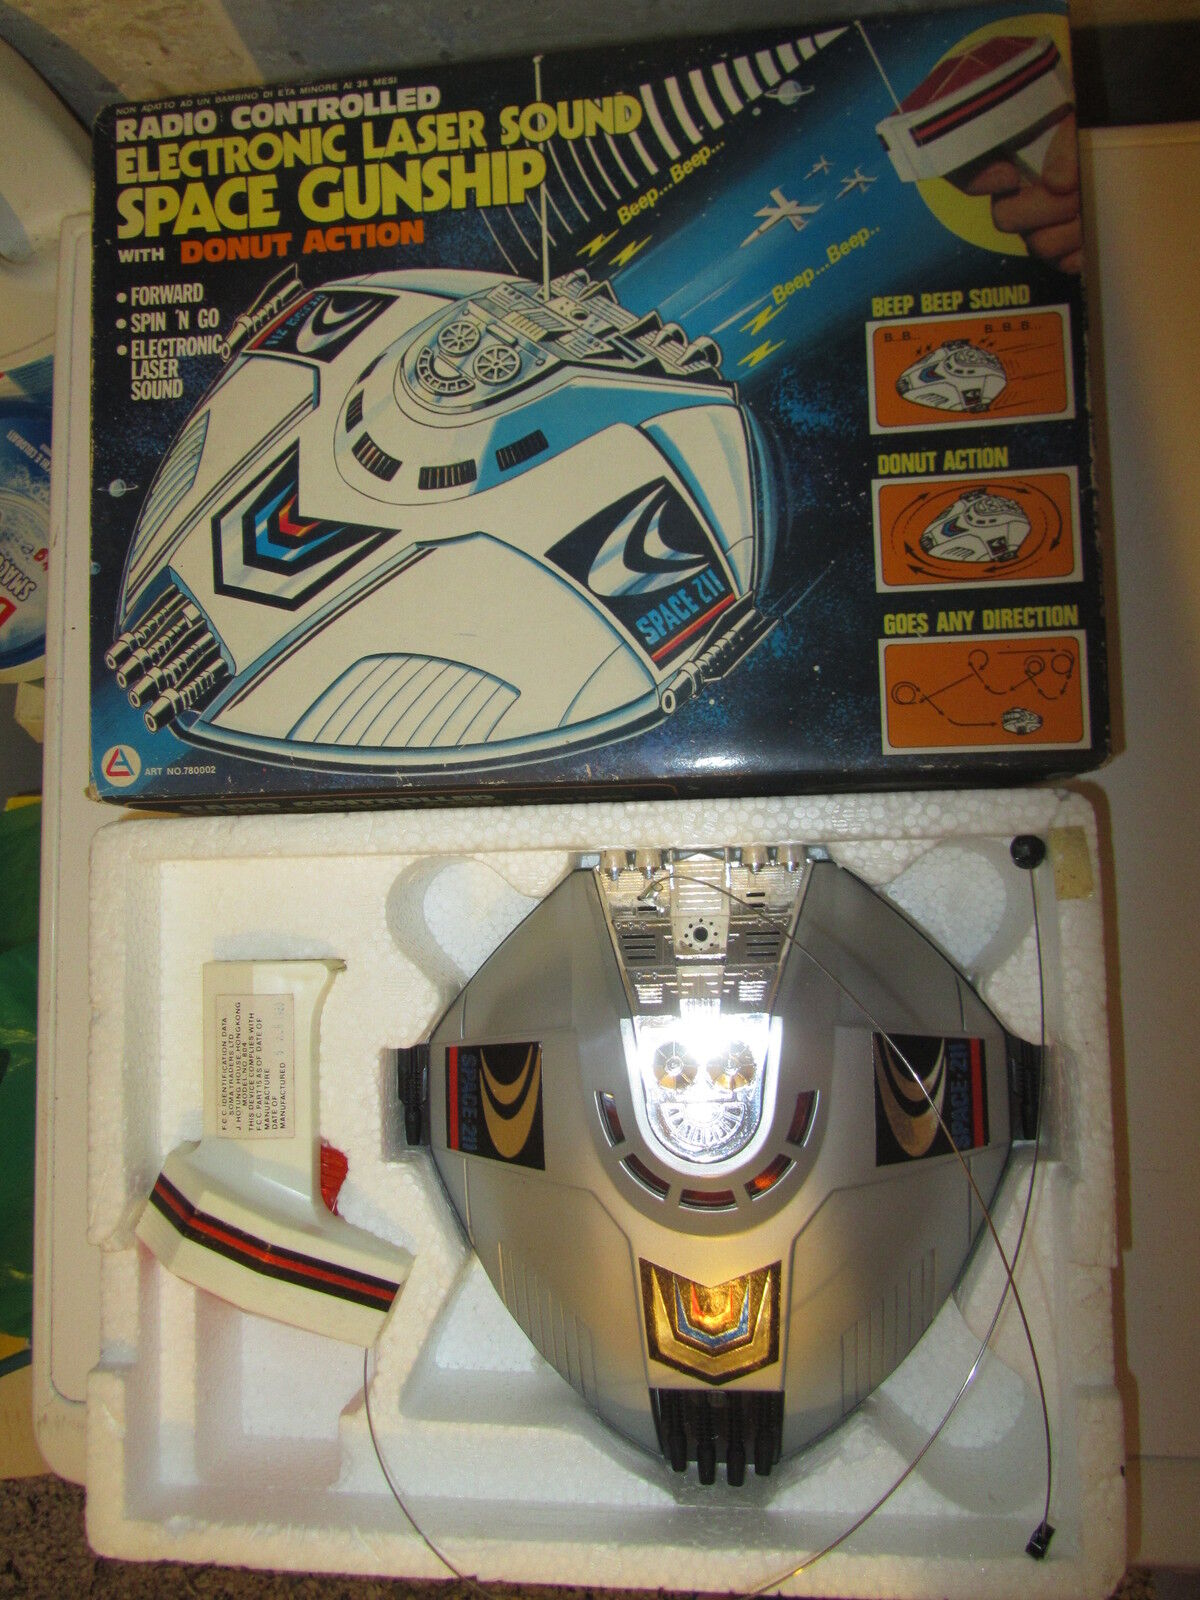 Electronic Laser Sound Space Gunship Battery Operated Astronave Robot '70 ALES